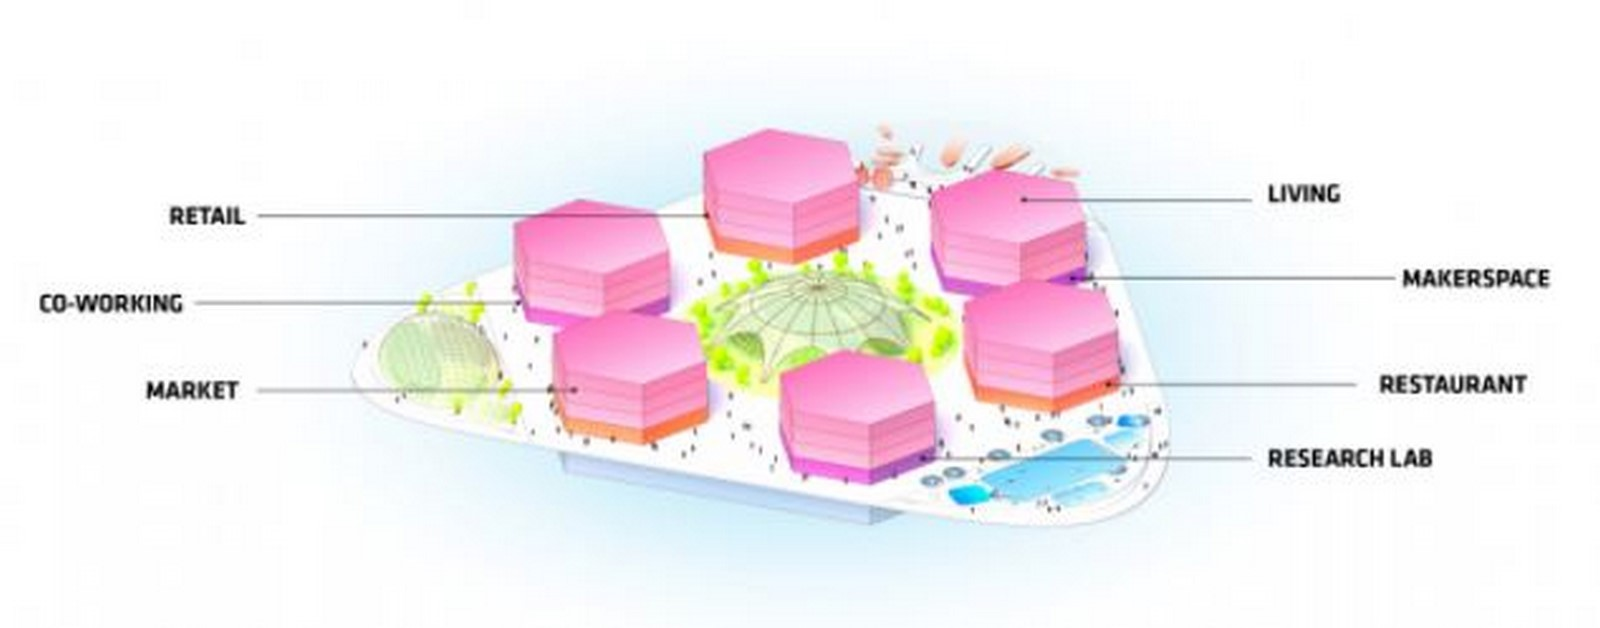 Why 'Oceanix City' by Bjarke Ingels can be considered as a milestone of futuristic architecture - Sheet8